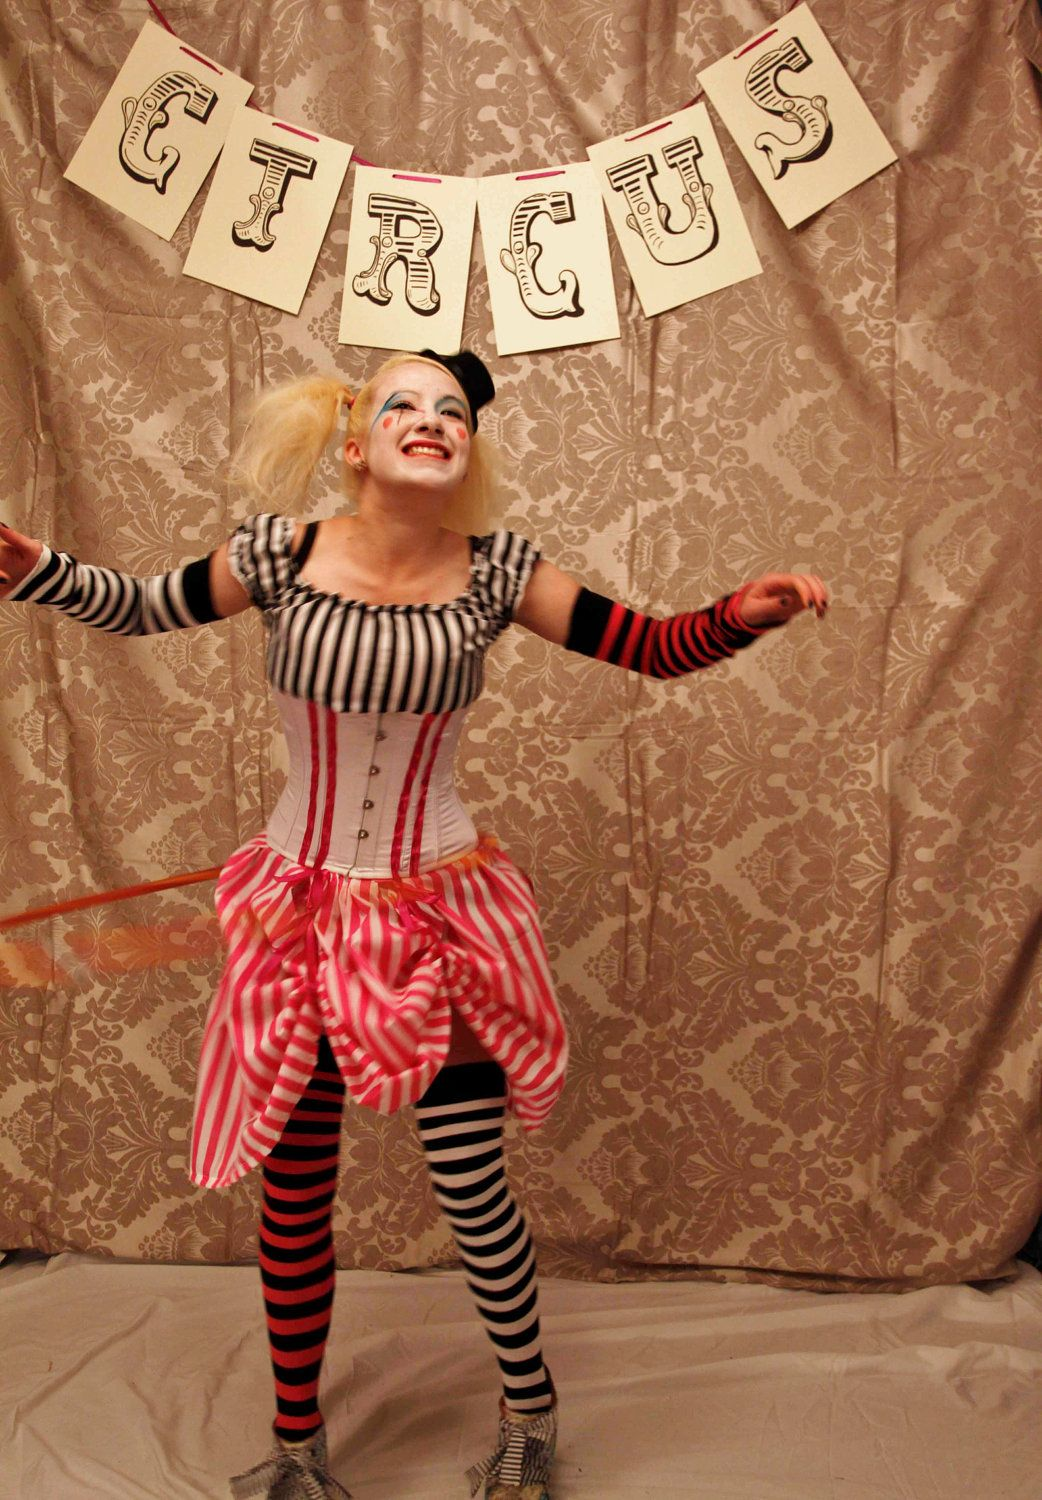 023598c228 Circus Clown Corset Costume Oufit-Corset Only-MADE FOR BUYER.  160.00